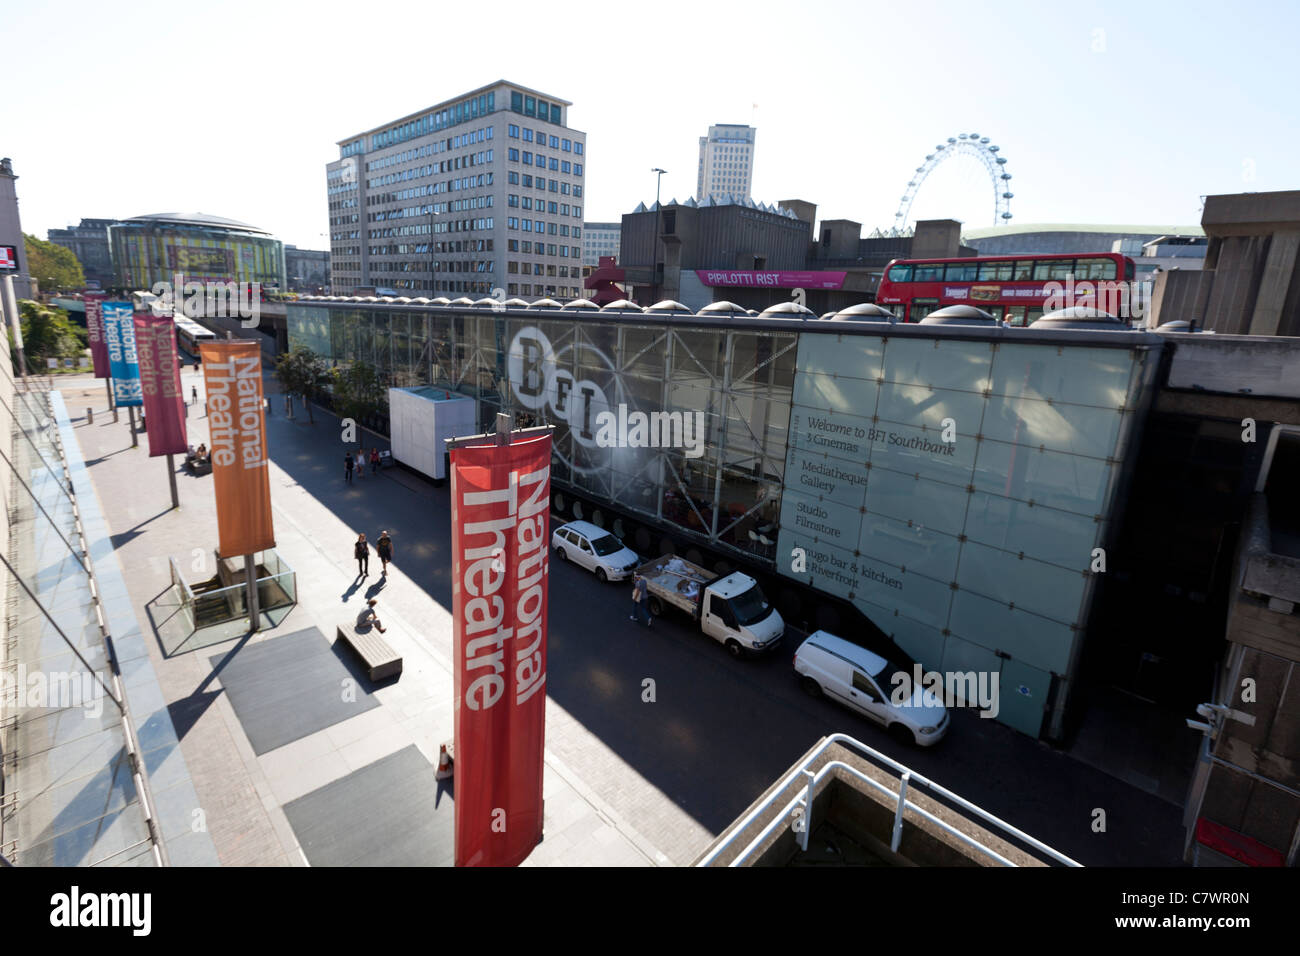 BFI, Southbank, London, England, UK. - Stock Image